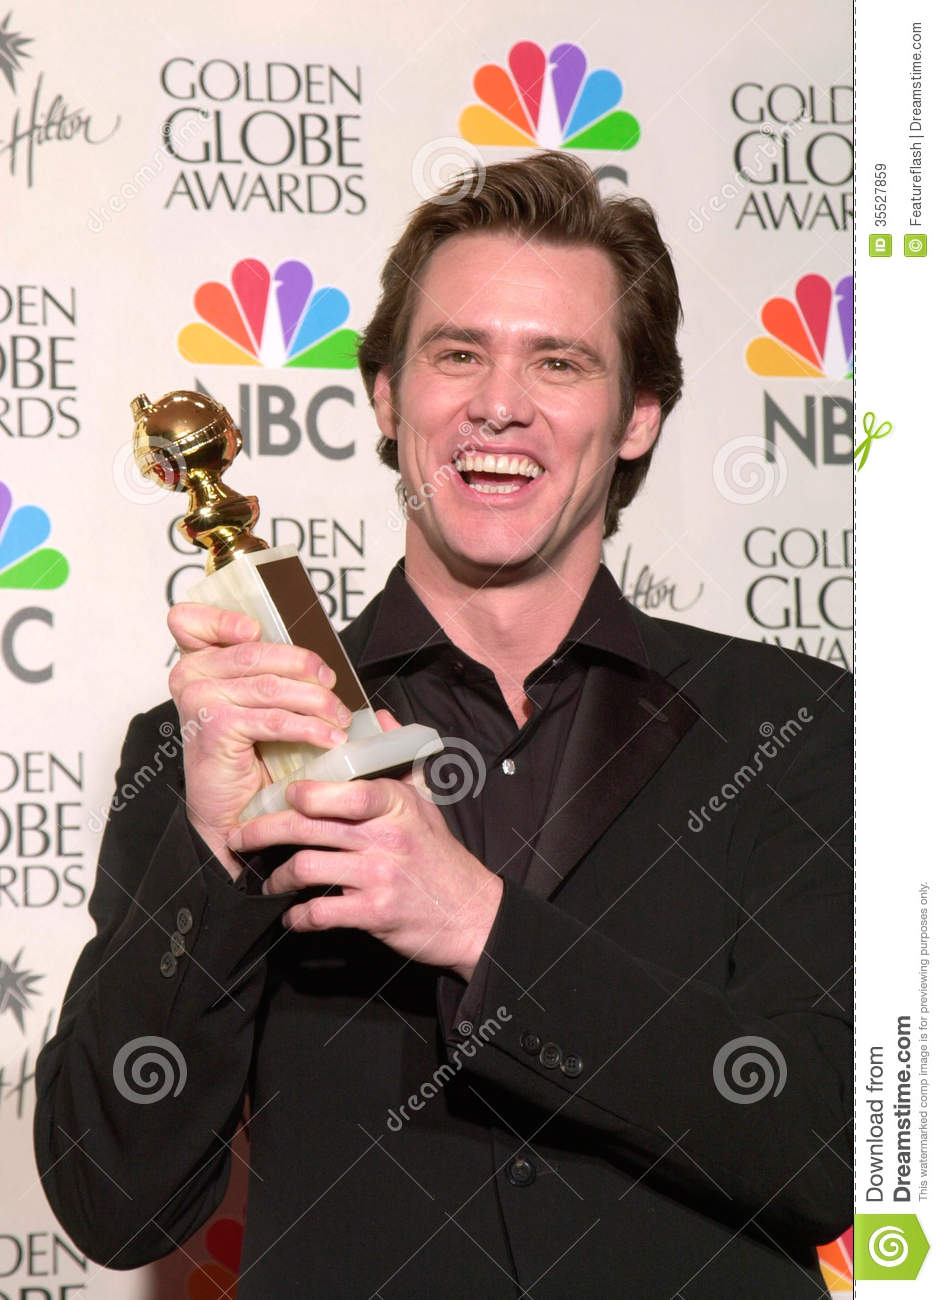 Watch Whats Nicole Kidman Really Thinking When The Camera Cuts To Her At Award Shows furthermore Royalty Free Stock Images Jim Carrey Jan Actor Golden Globe Awards Where Won Best Actor  edy Musical Movie Man Moon Jean Image35527859 together with Stock Photos Global Reward Recognition Image9275263 also 271175 together with Oscar 2014 Pelo Twitter. on the oscar trophy